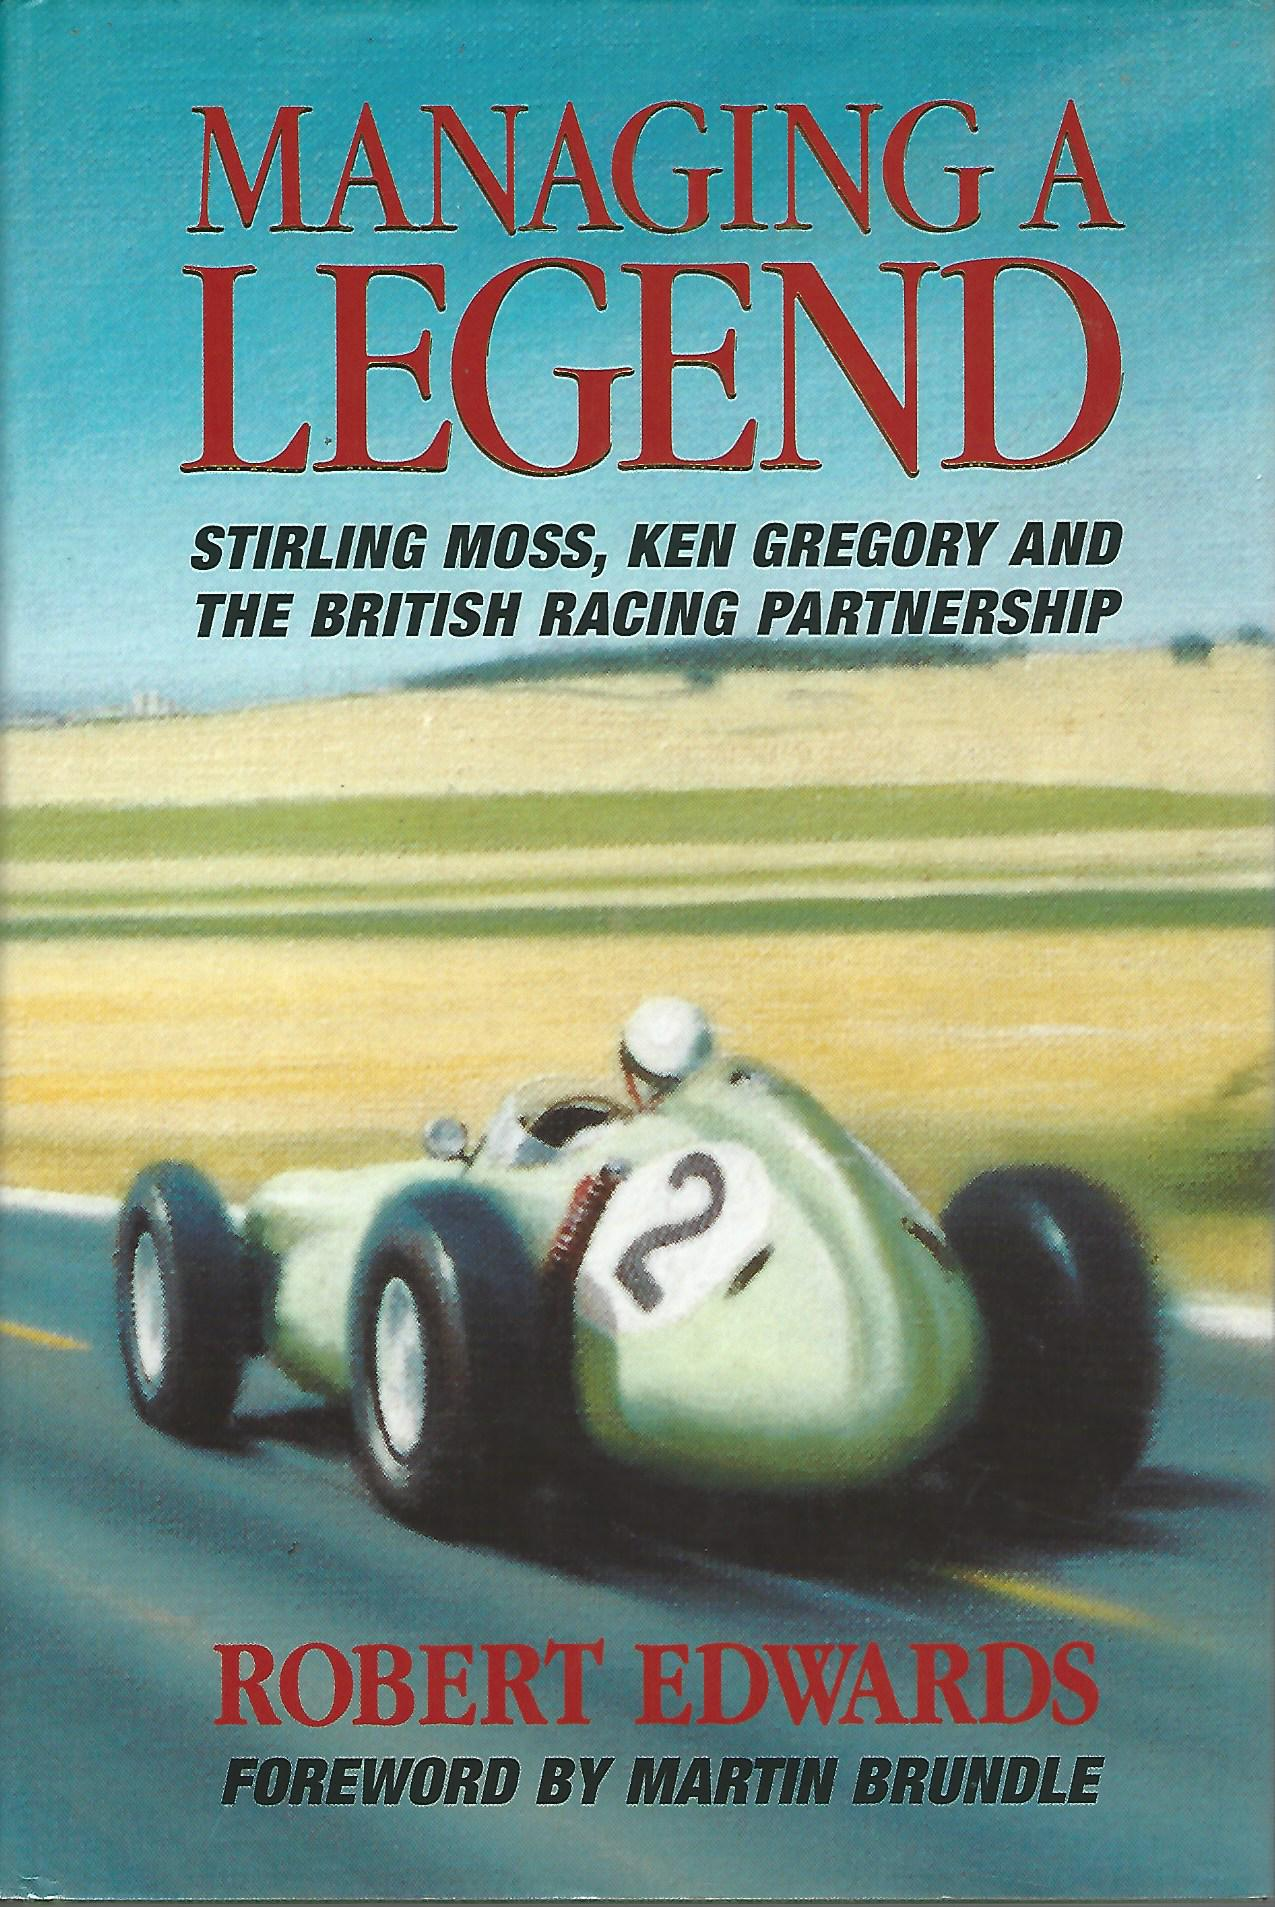 Image for Managing a Legend: Sterling Moss, Ken Gregory and the British Racing Partnership.